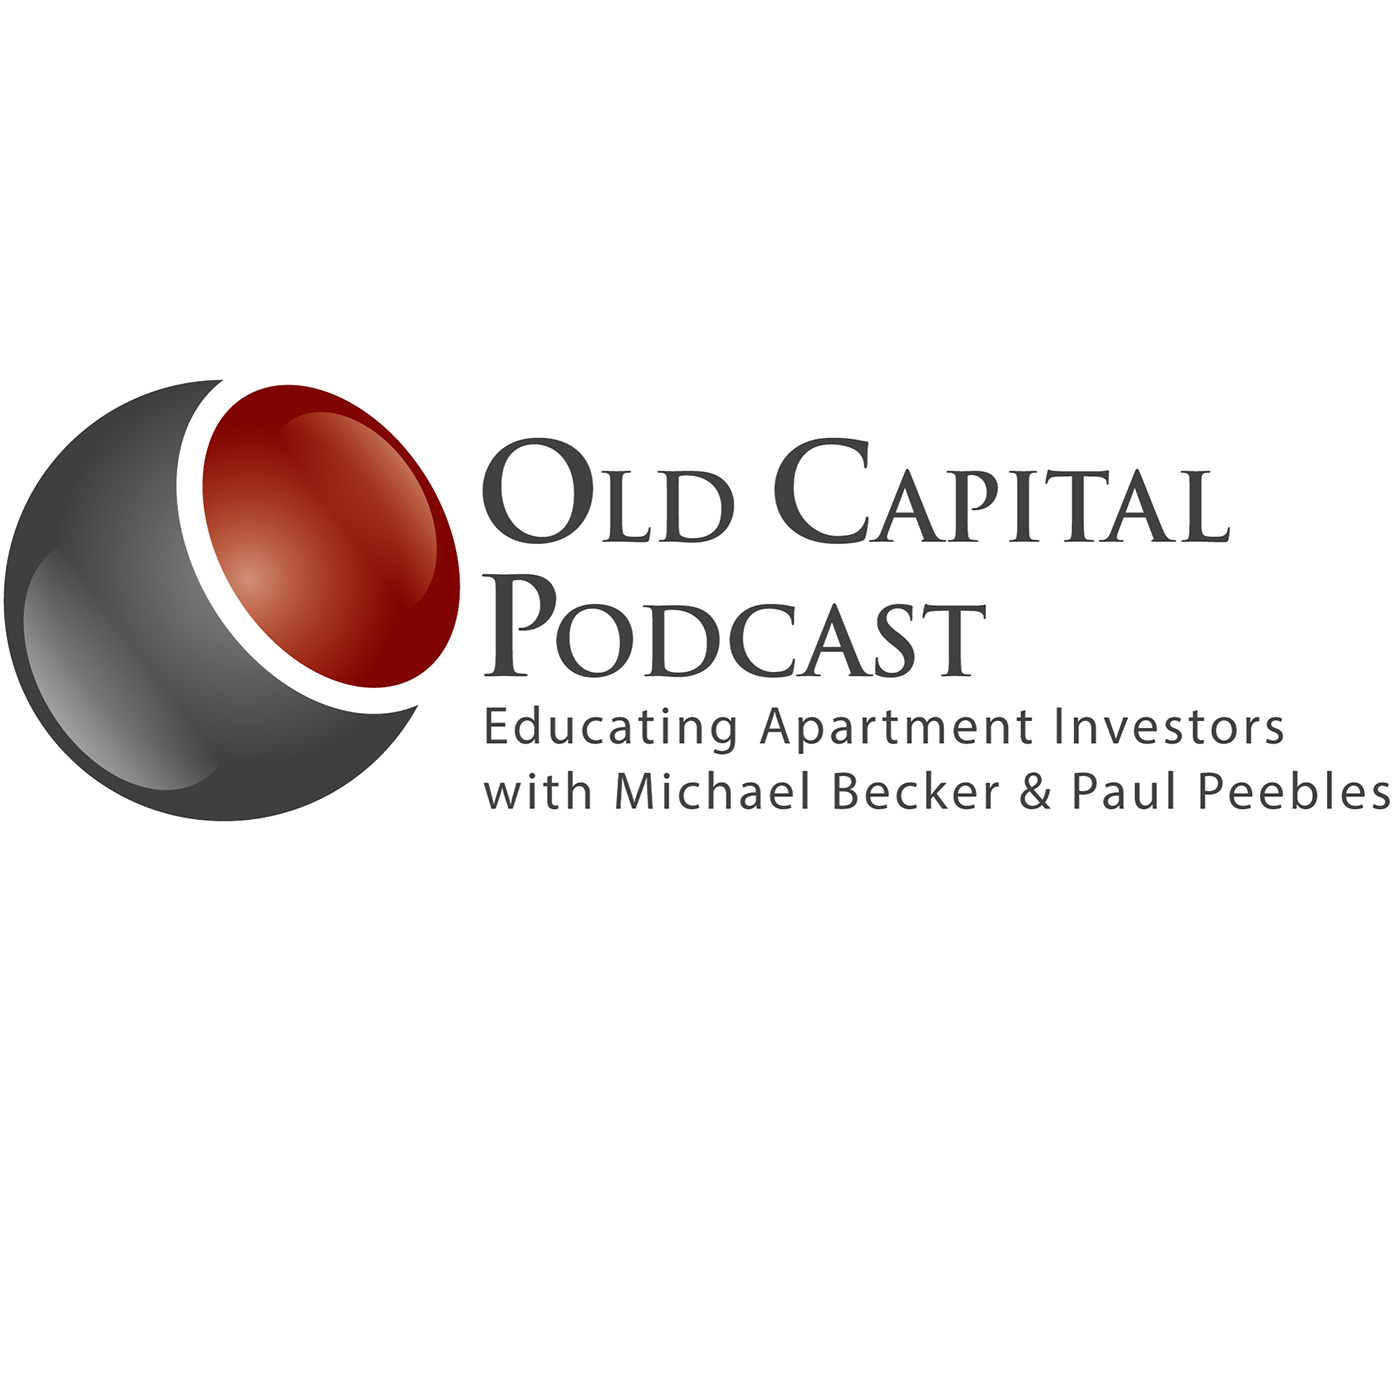 """Artwork for ASK MIKE MONDAYS - Mike, you have motivated me to buy apartments. I want to be like Michael Becker… """"What can you expect from your lender AFTER you close?"""" (Episode 5B of 5)"""